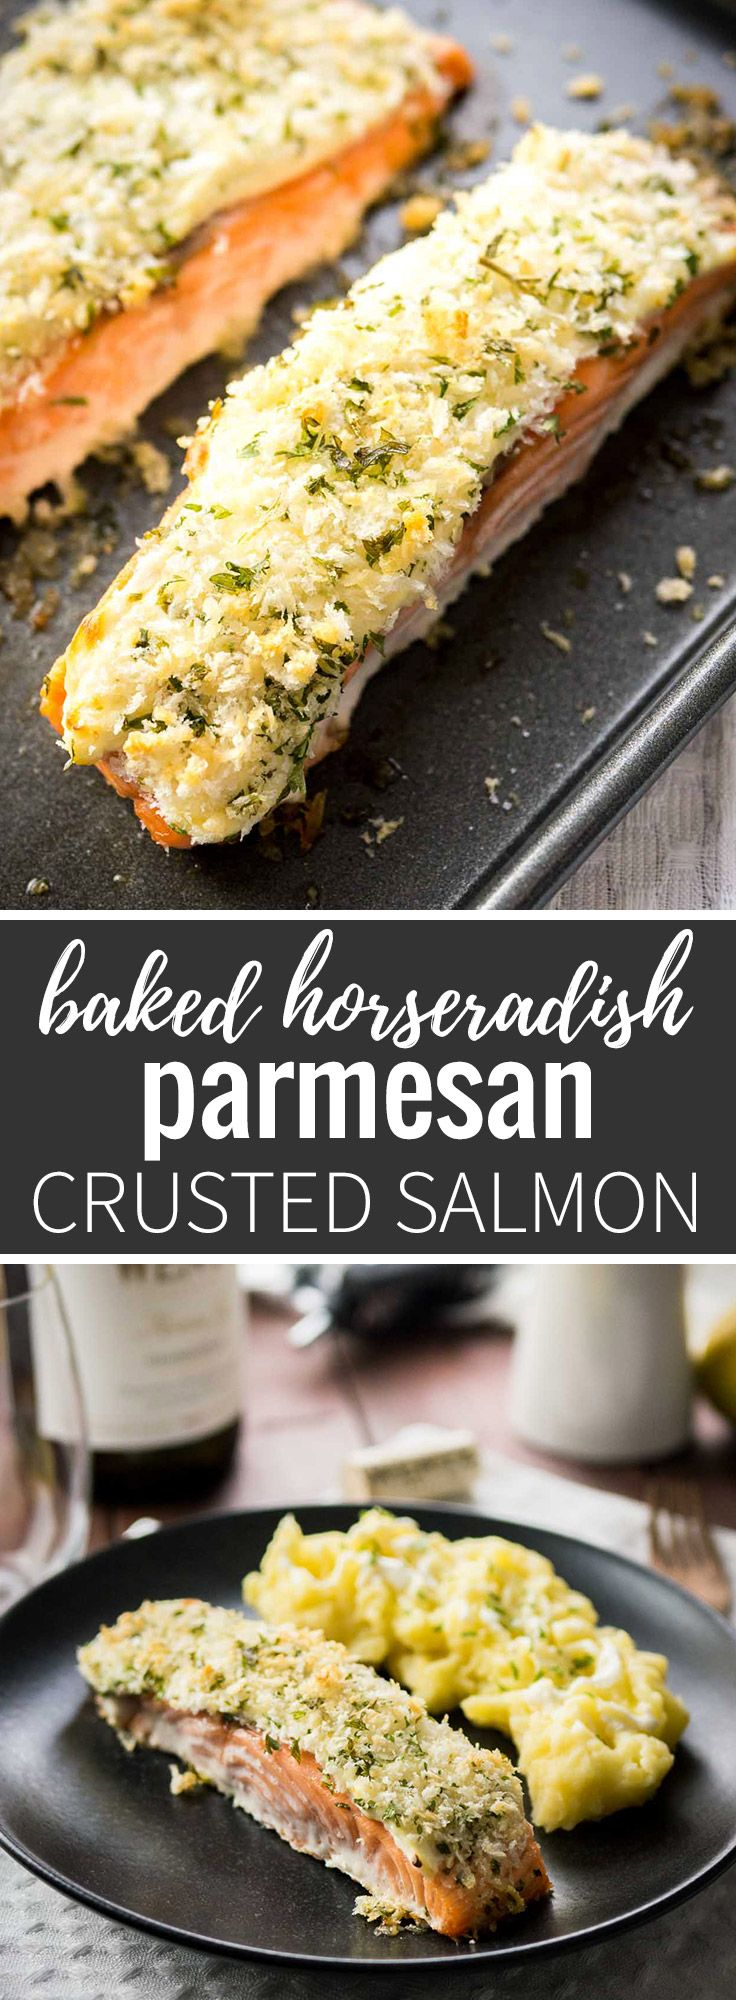 Horseradish Parmesan Crusted Salmon410 best Seafood Recipes images on Pinterest   Seafood recipes  . Dinner Ideas For 20 Guests. Home Design Ideas